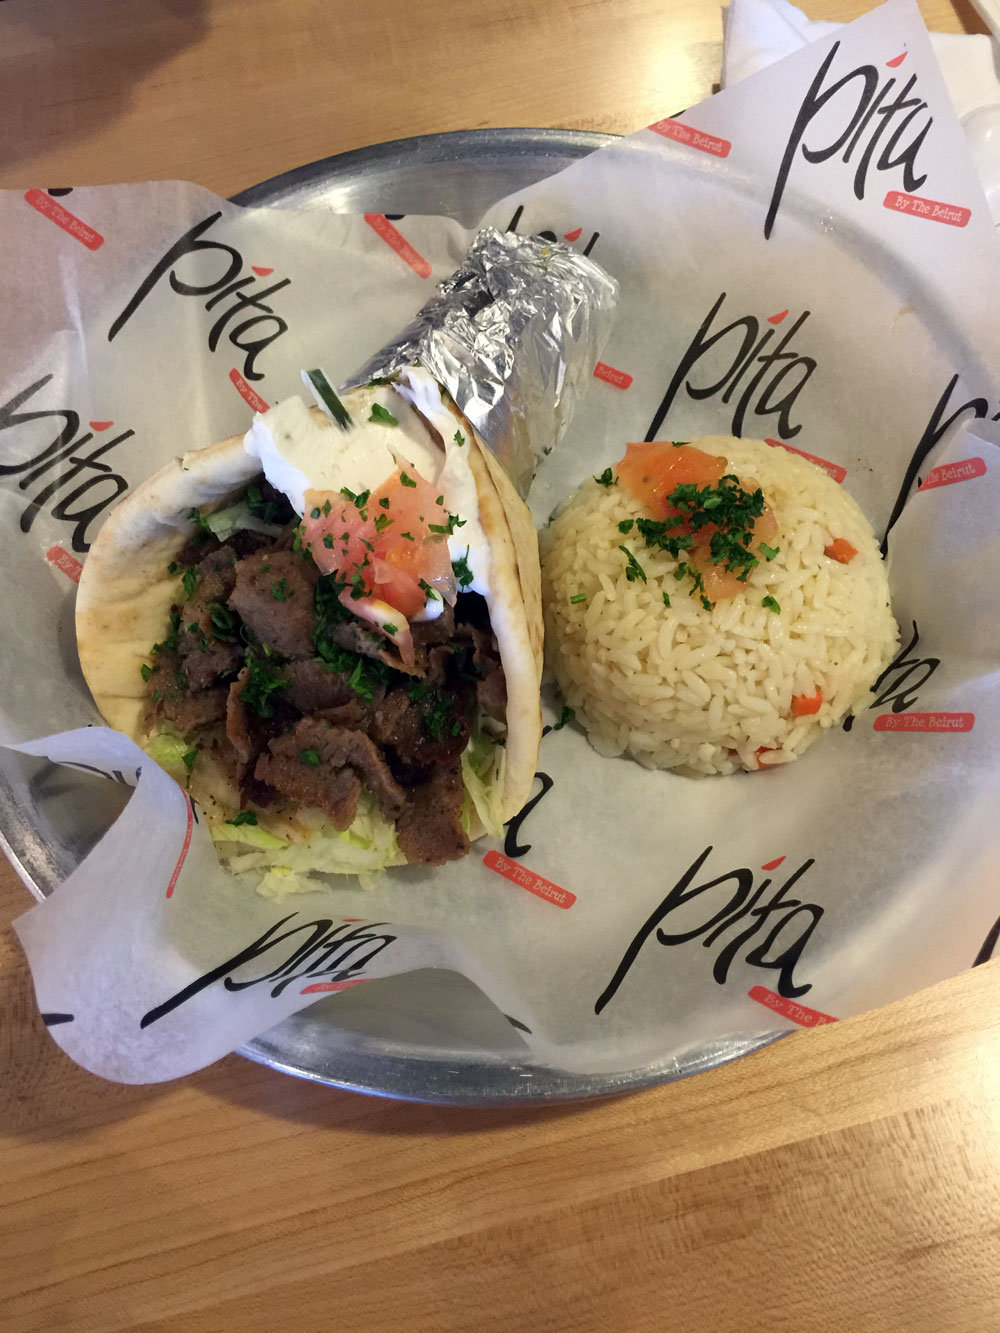 Independent Restaurant Review: Pita by the Beirut - Dunwoody Georgia